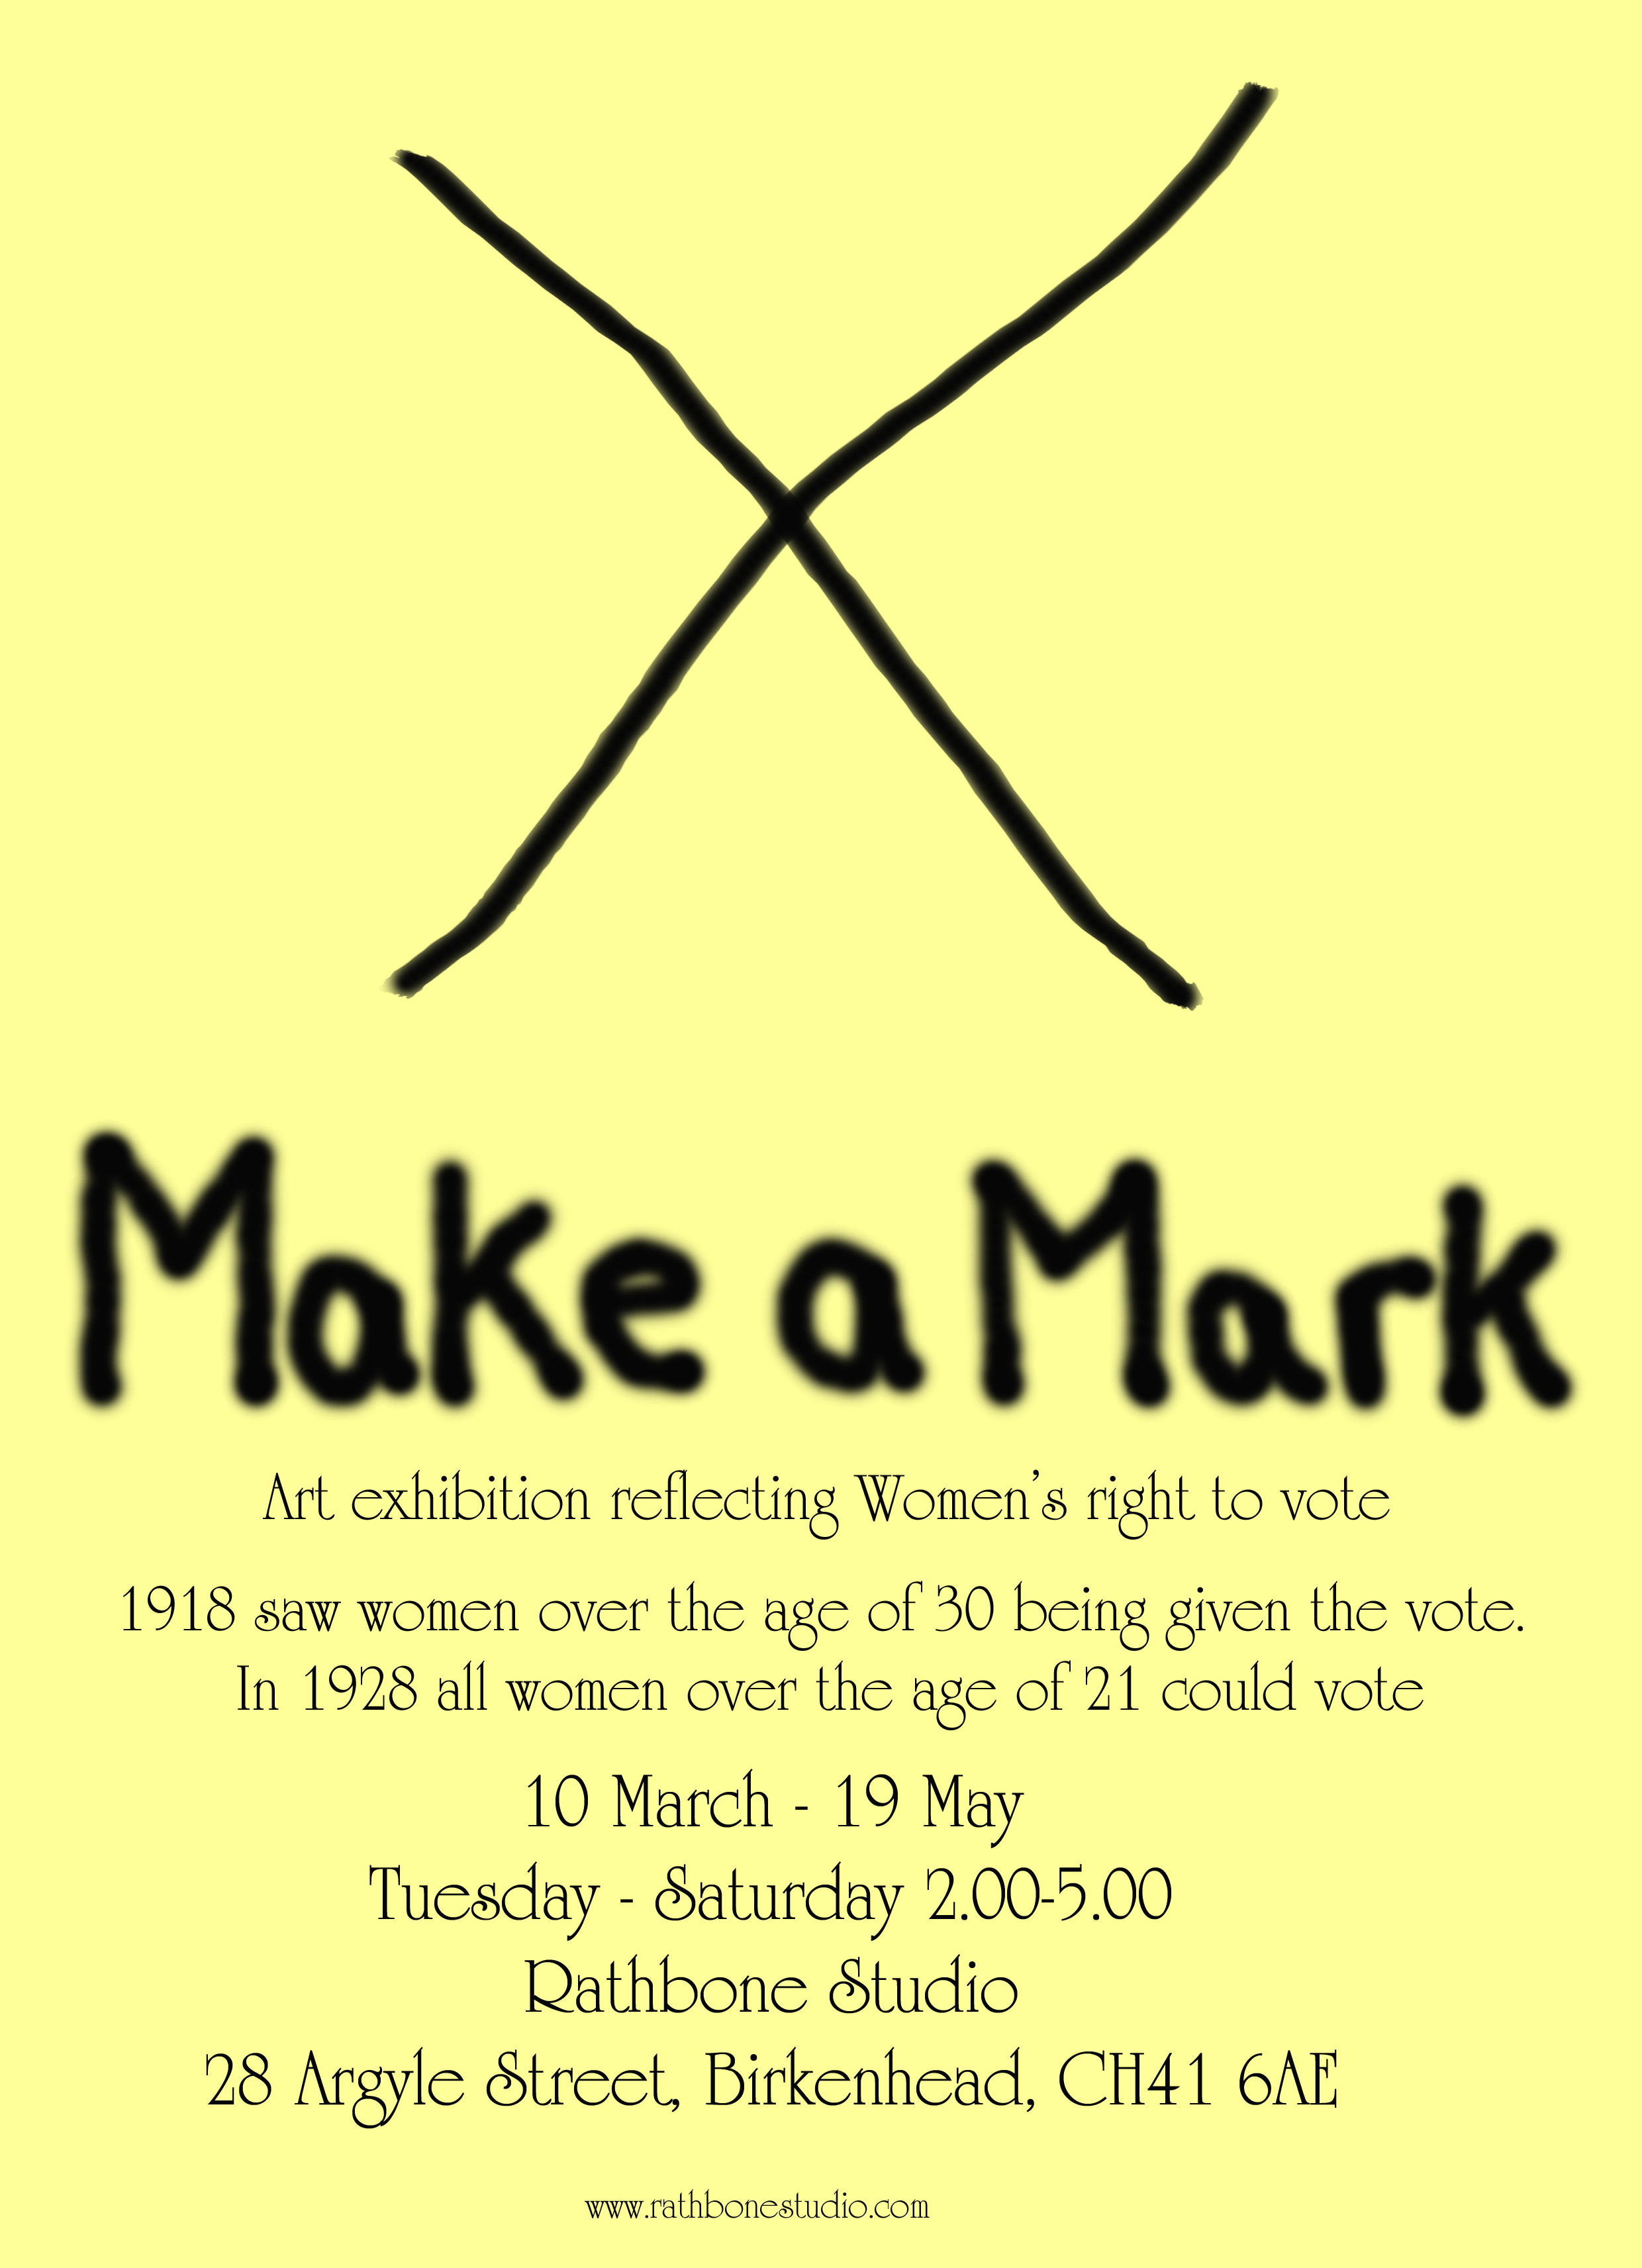 Rathbone Studio: X  Make a Mark